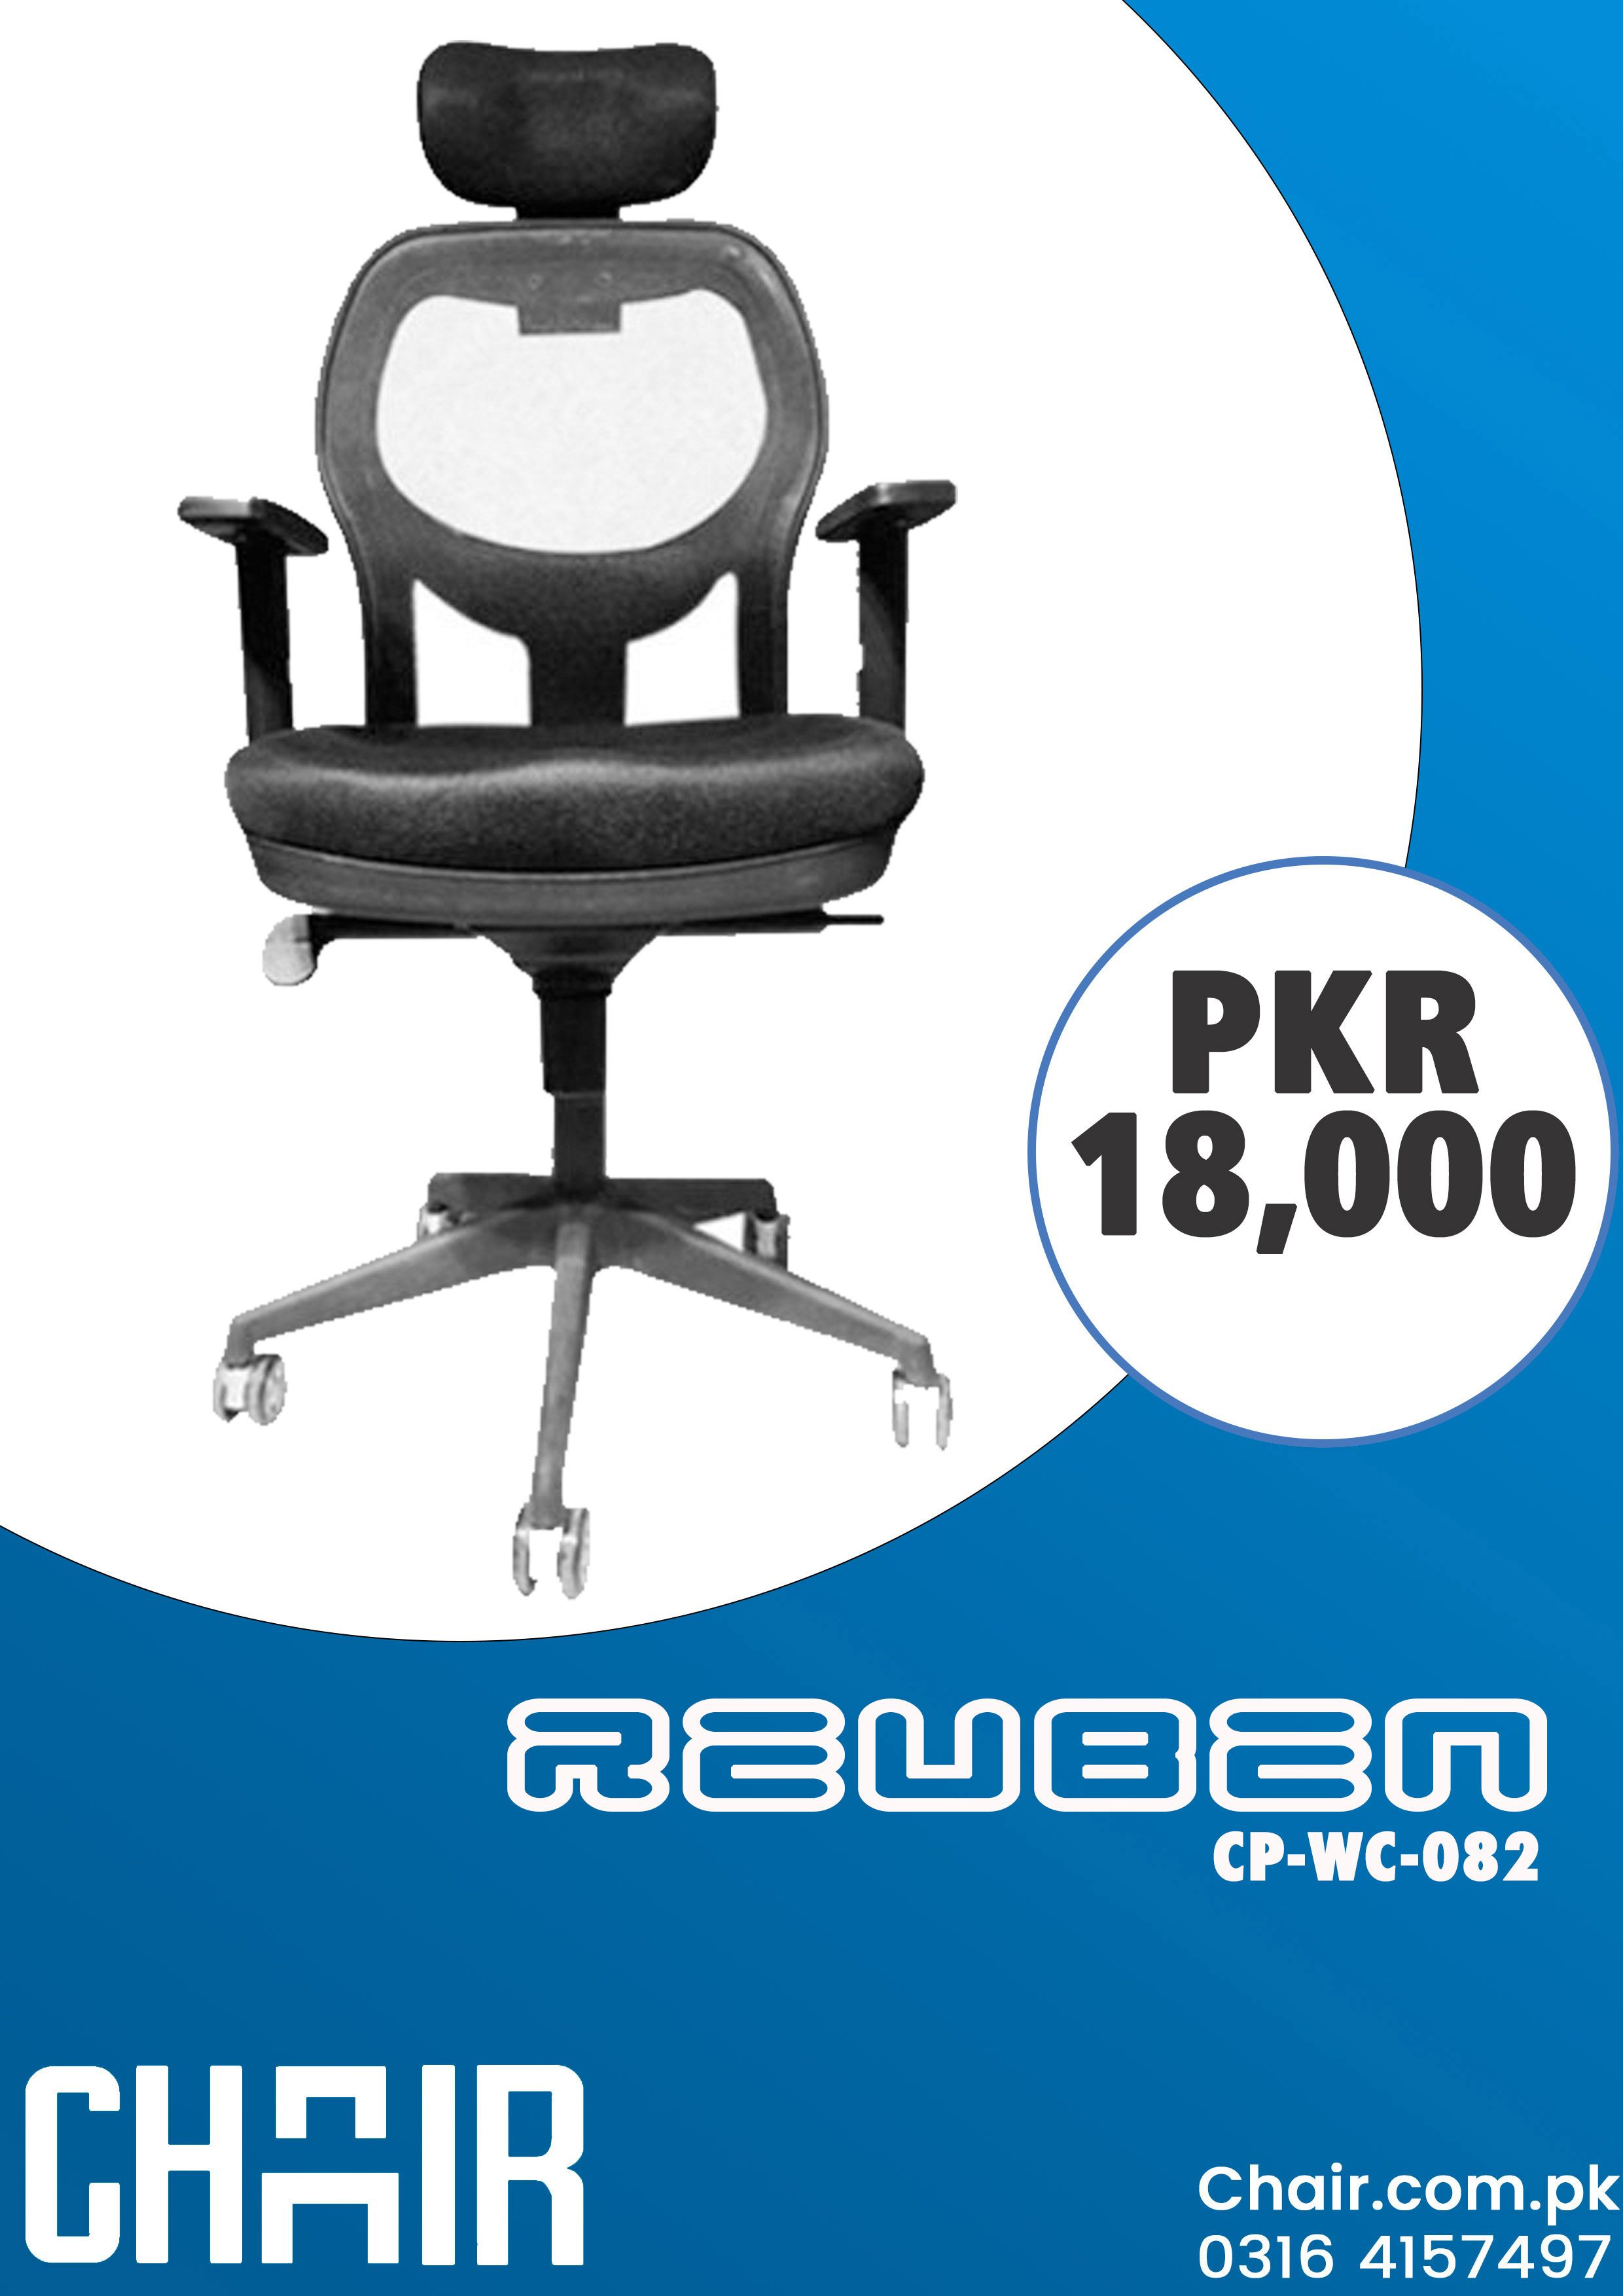 Reuben Computer Office Chair in 10  Office chair, Chair, Office